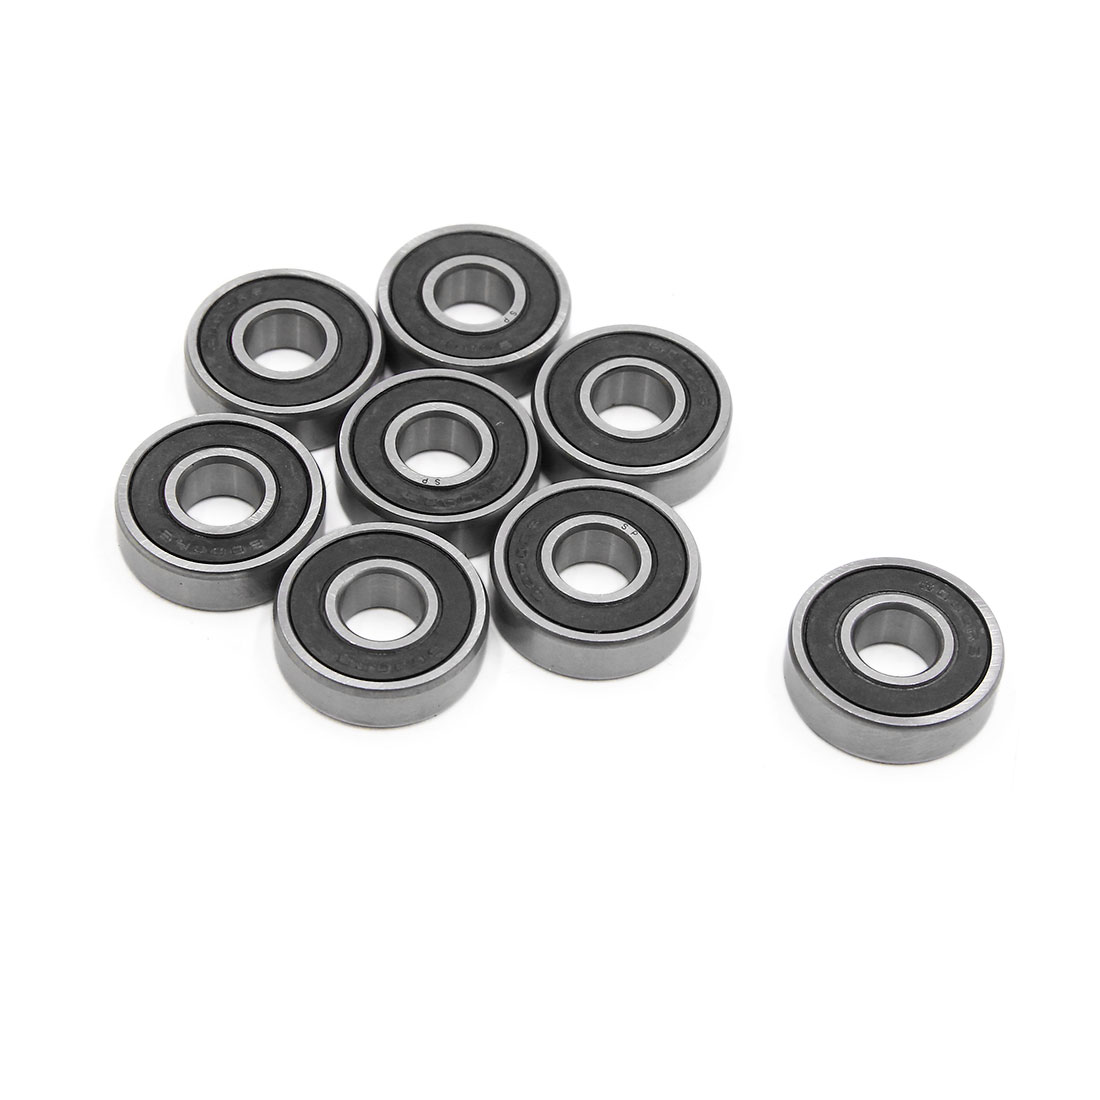 8pcs 6000-2RS Scooter Motorcycle Sealed Deep Groove Ball Bearing 26 x 10 x 8mm